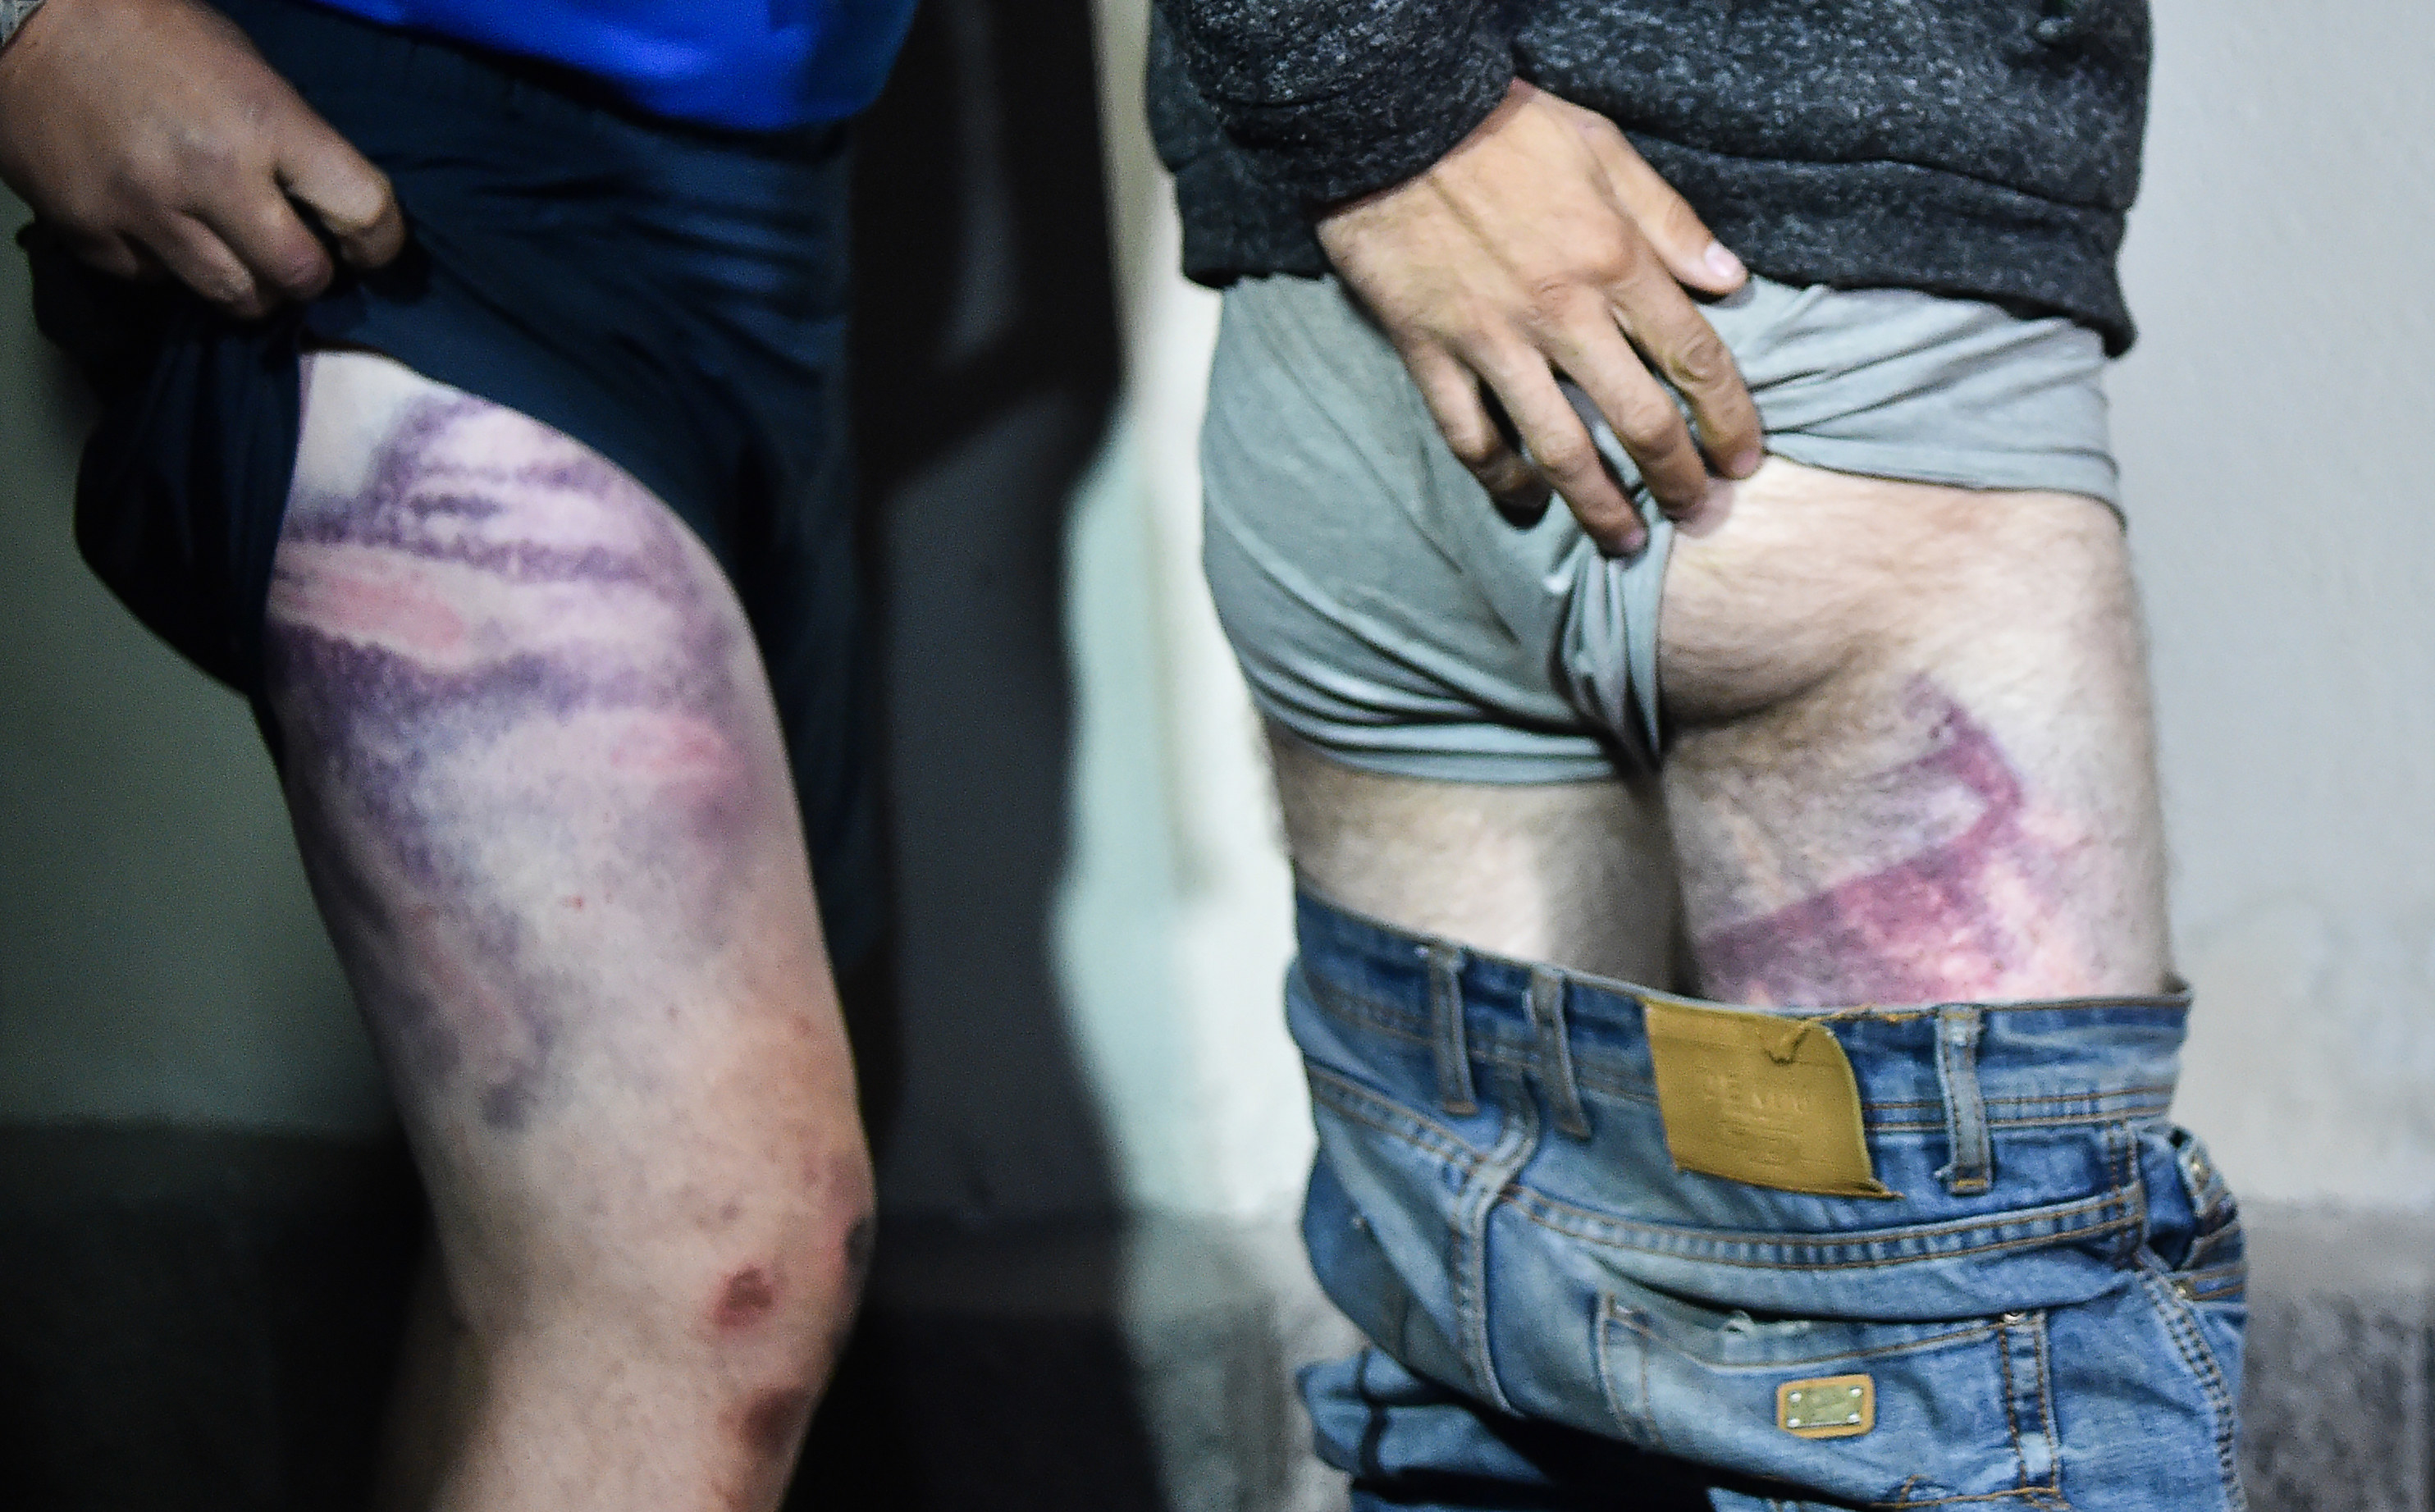 Two people lift up their shorts to show large bruises on their thighs